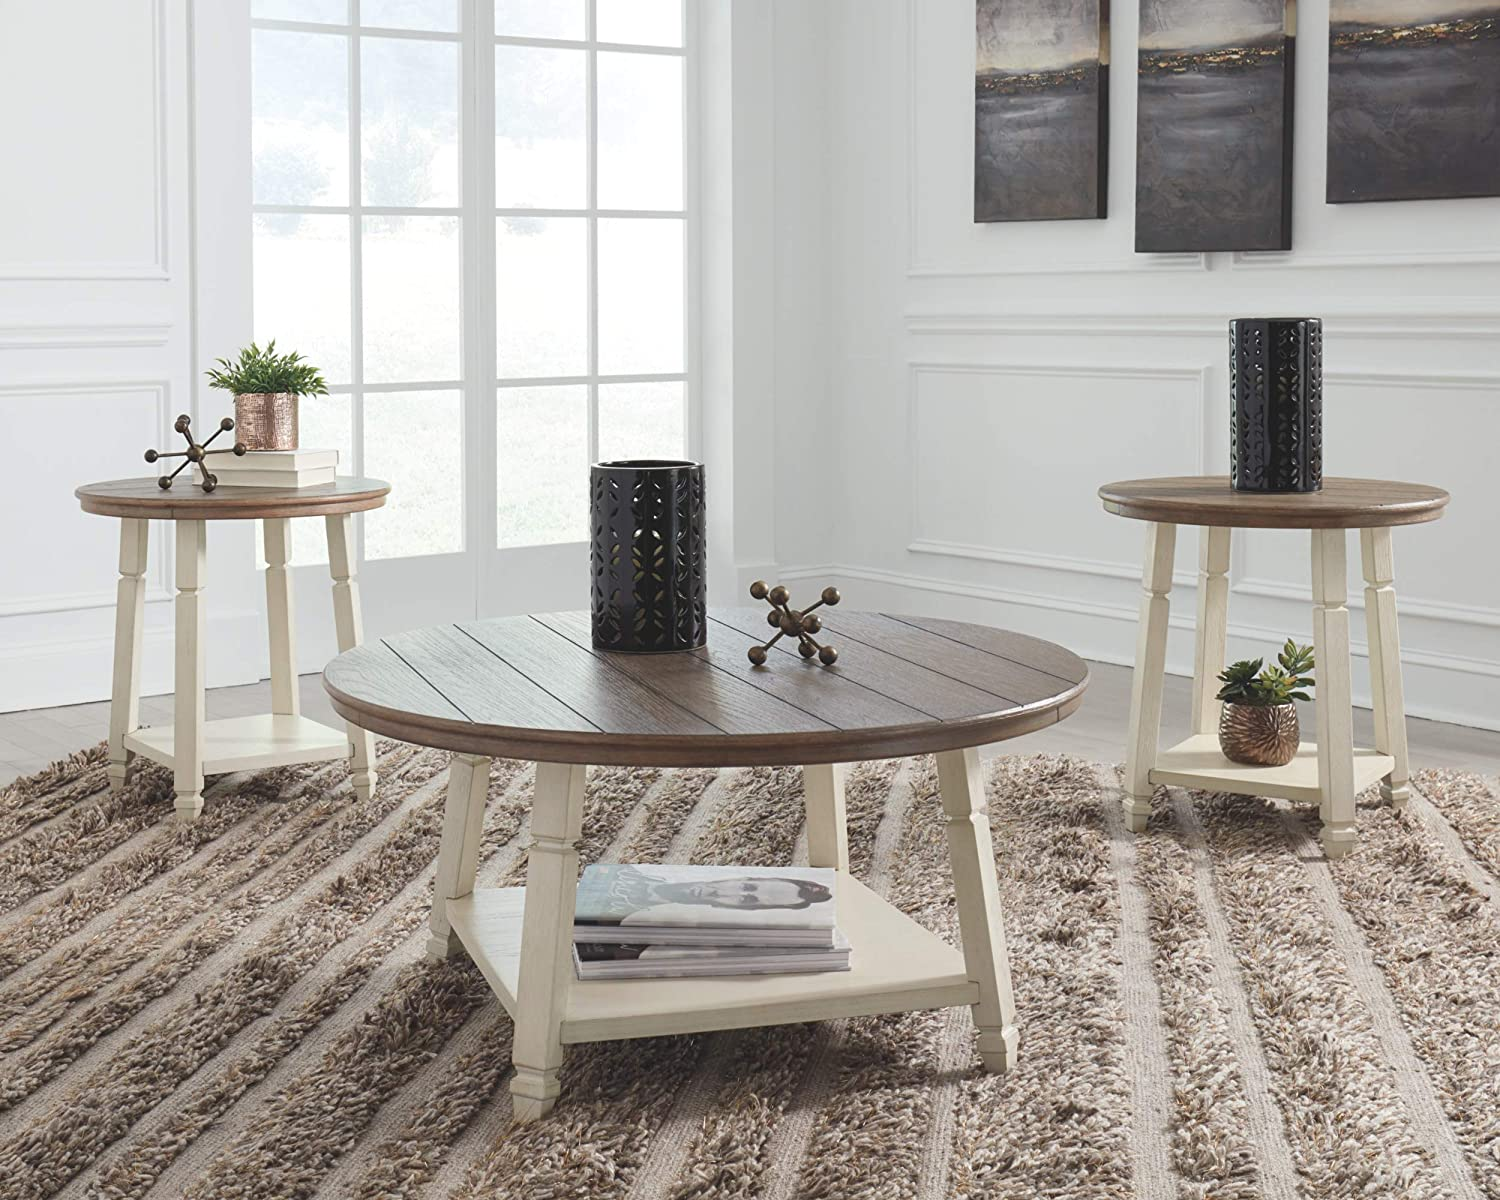 Signature Design by Ashley - Bolanbrook Farmhouse Occasional Coffee Table - Set of 3, Brown Wood/Antique White